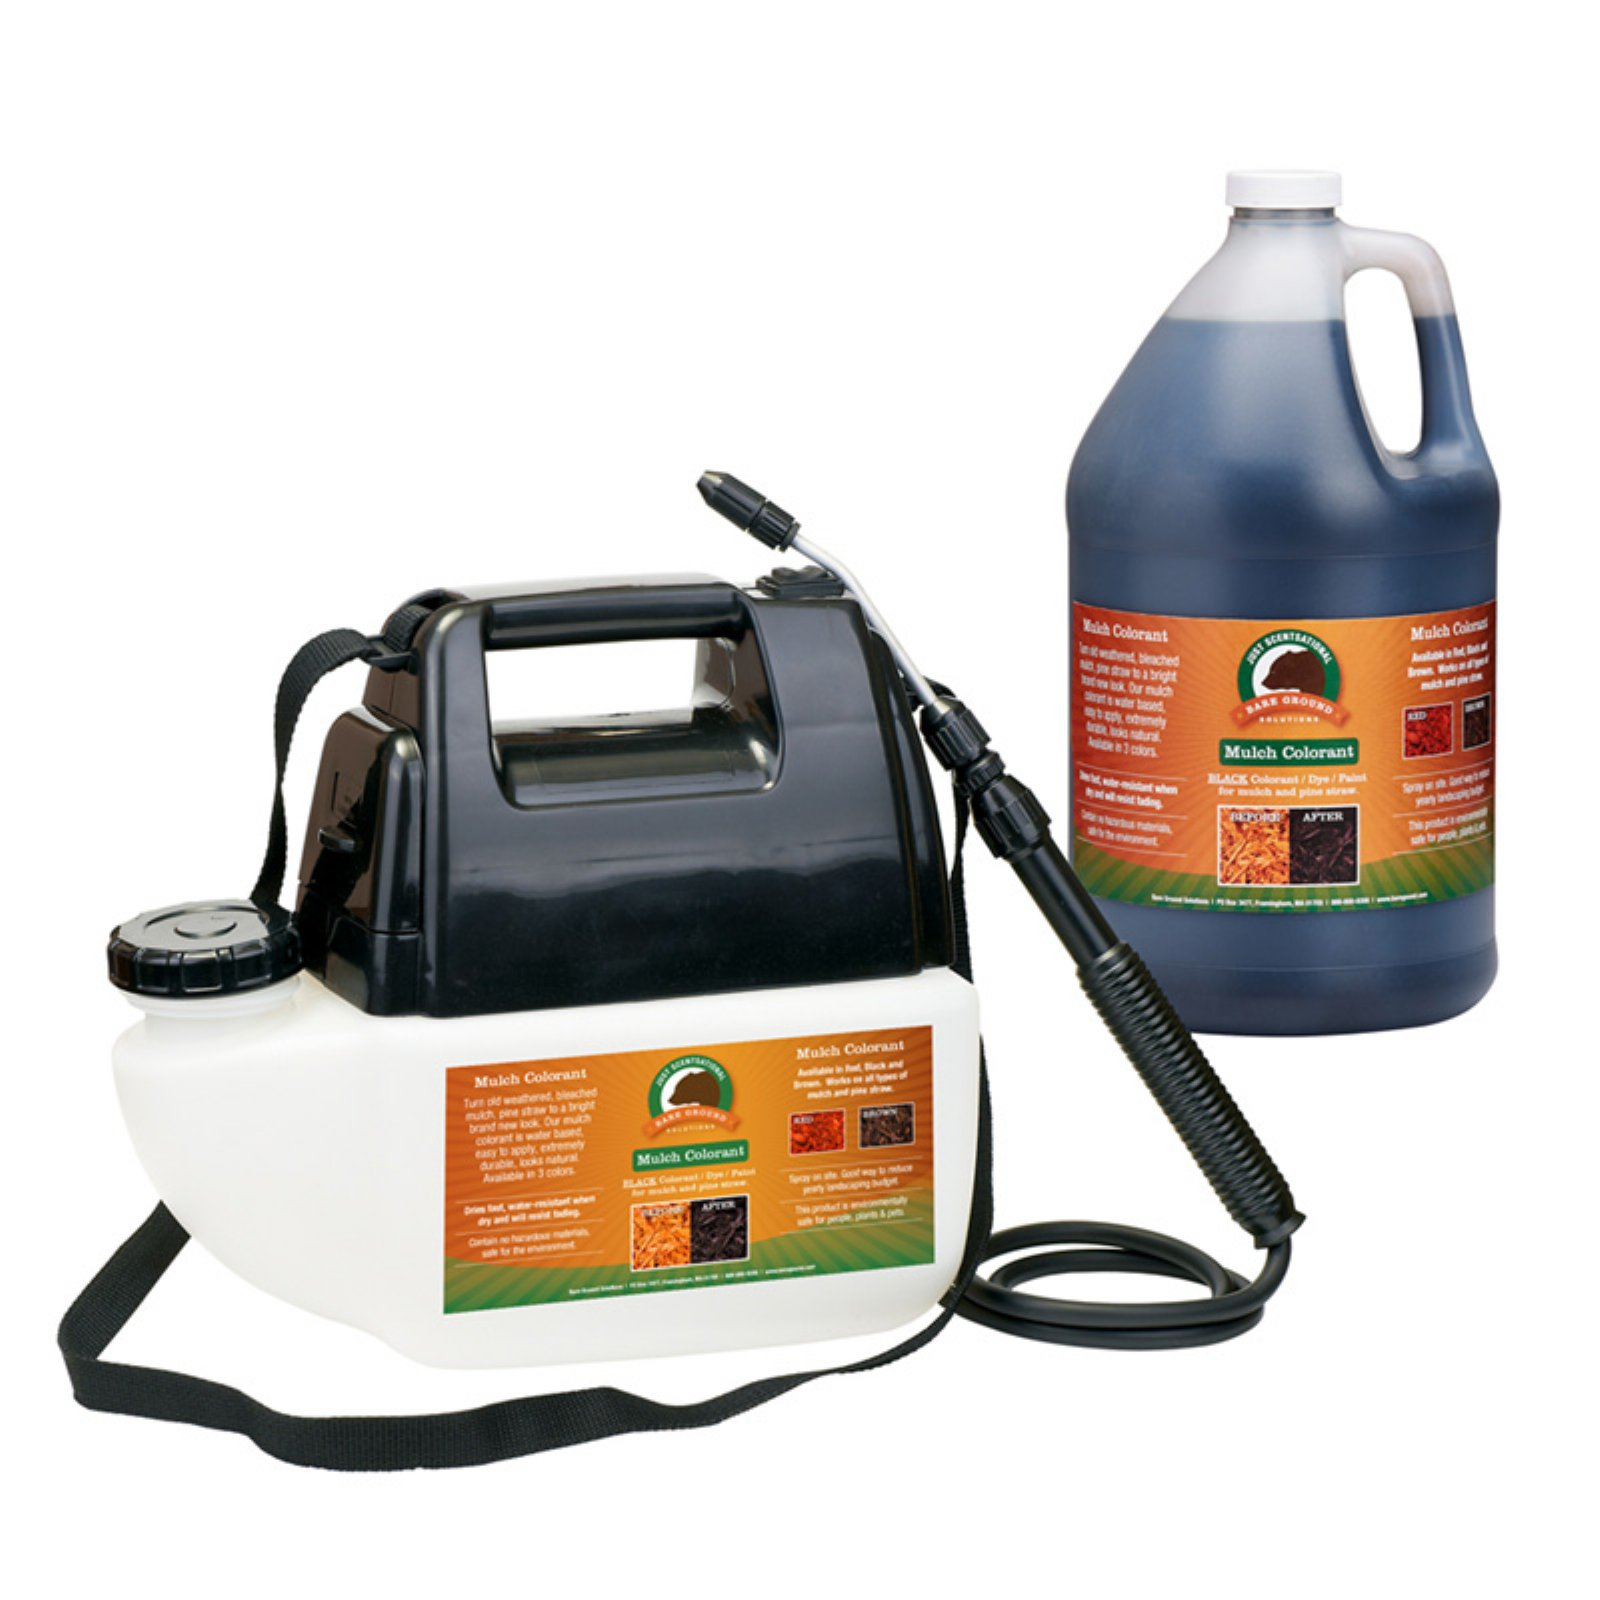 Just Scentsational Mulch Colorant with Battery Powered Sprayer by Bare Ground